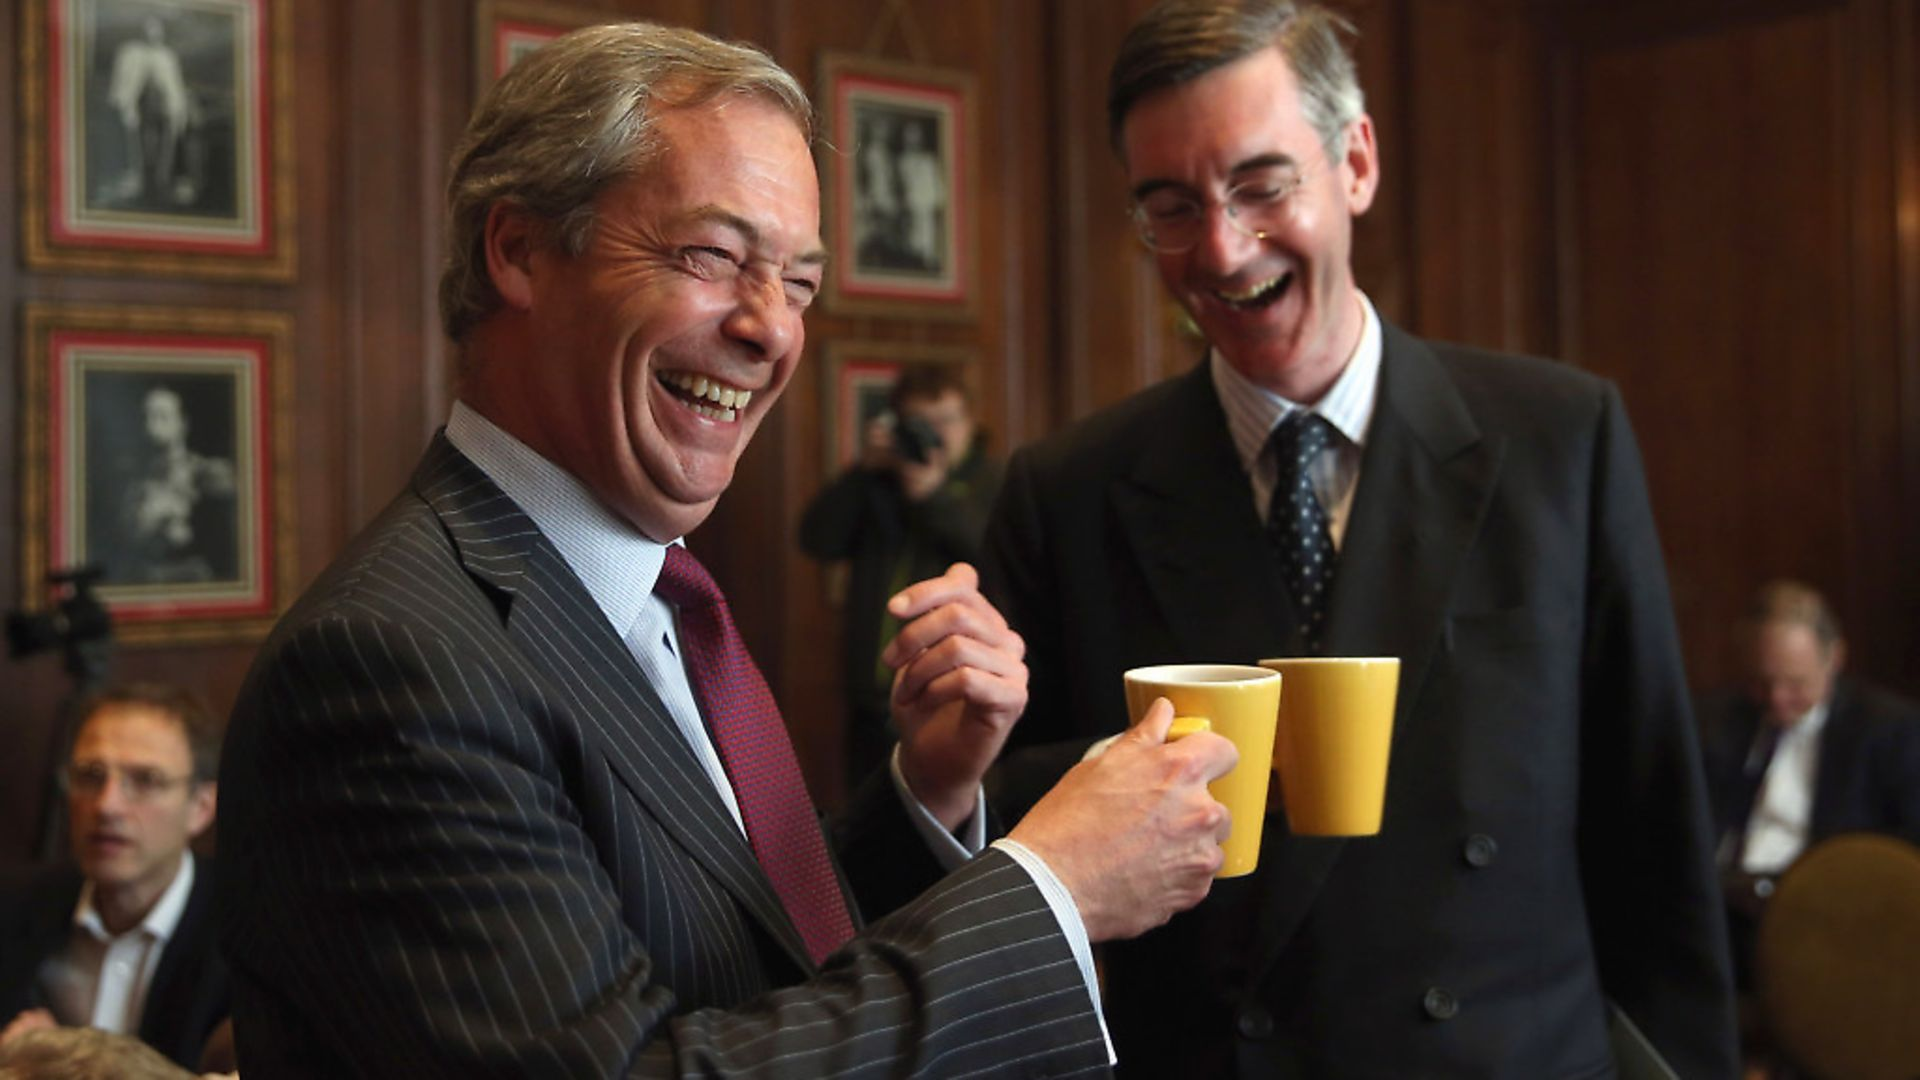 Cheers! Nigel Farage and Jacob Rees-Mogg. Photo: Dan Kitwood/Getty Images. - Credit: Getty Images